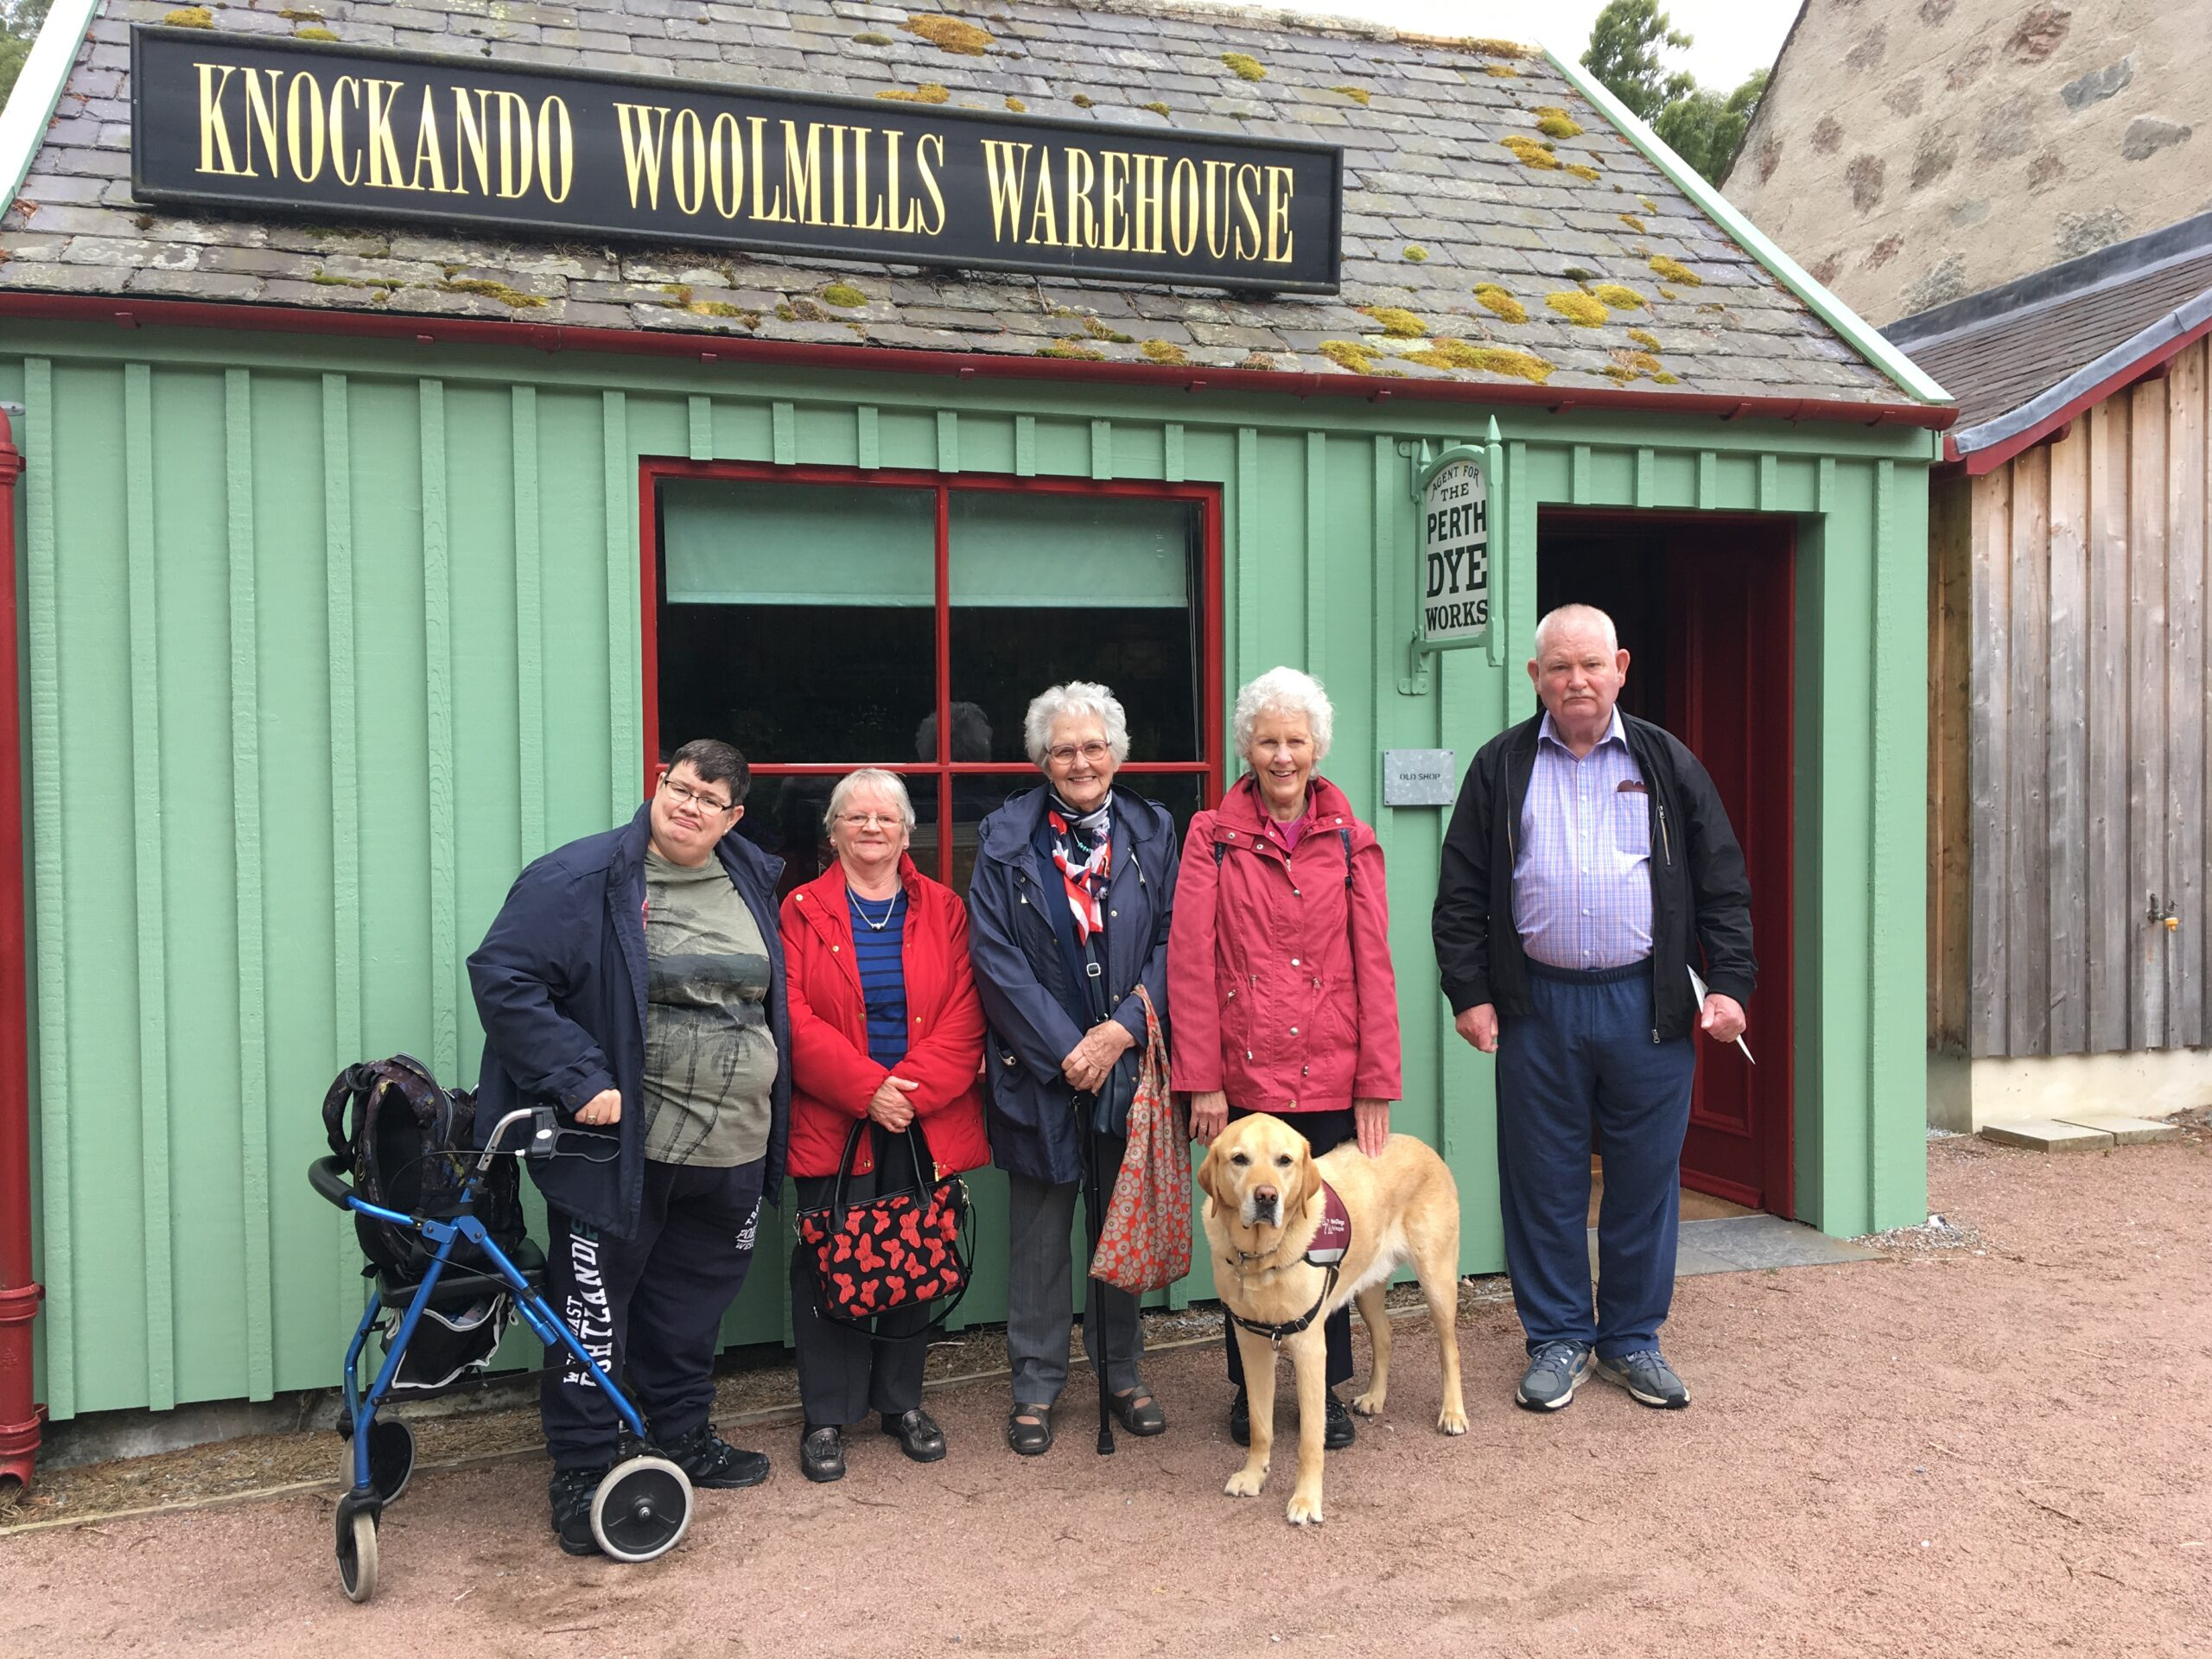 Five adults and a dog stand outside Knockando Woolen Mills